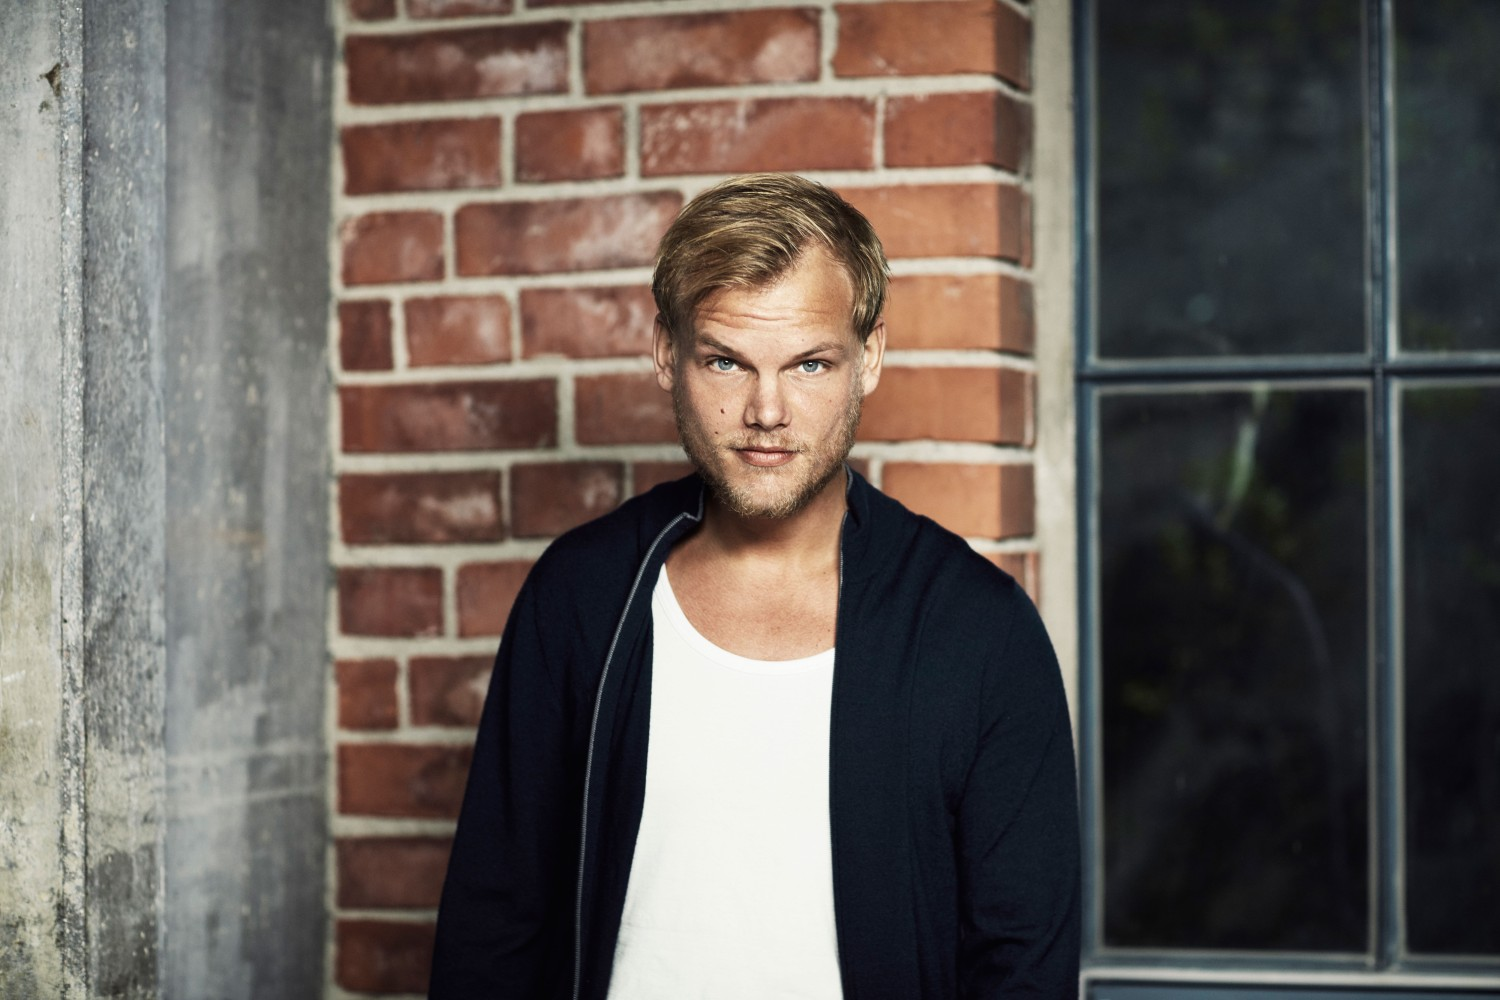 web size Avicii Photo01 cc Sean Eriksson